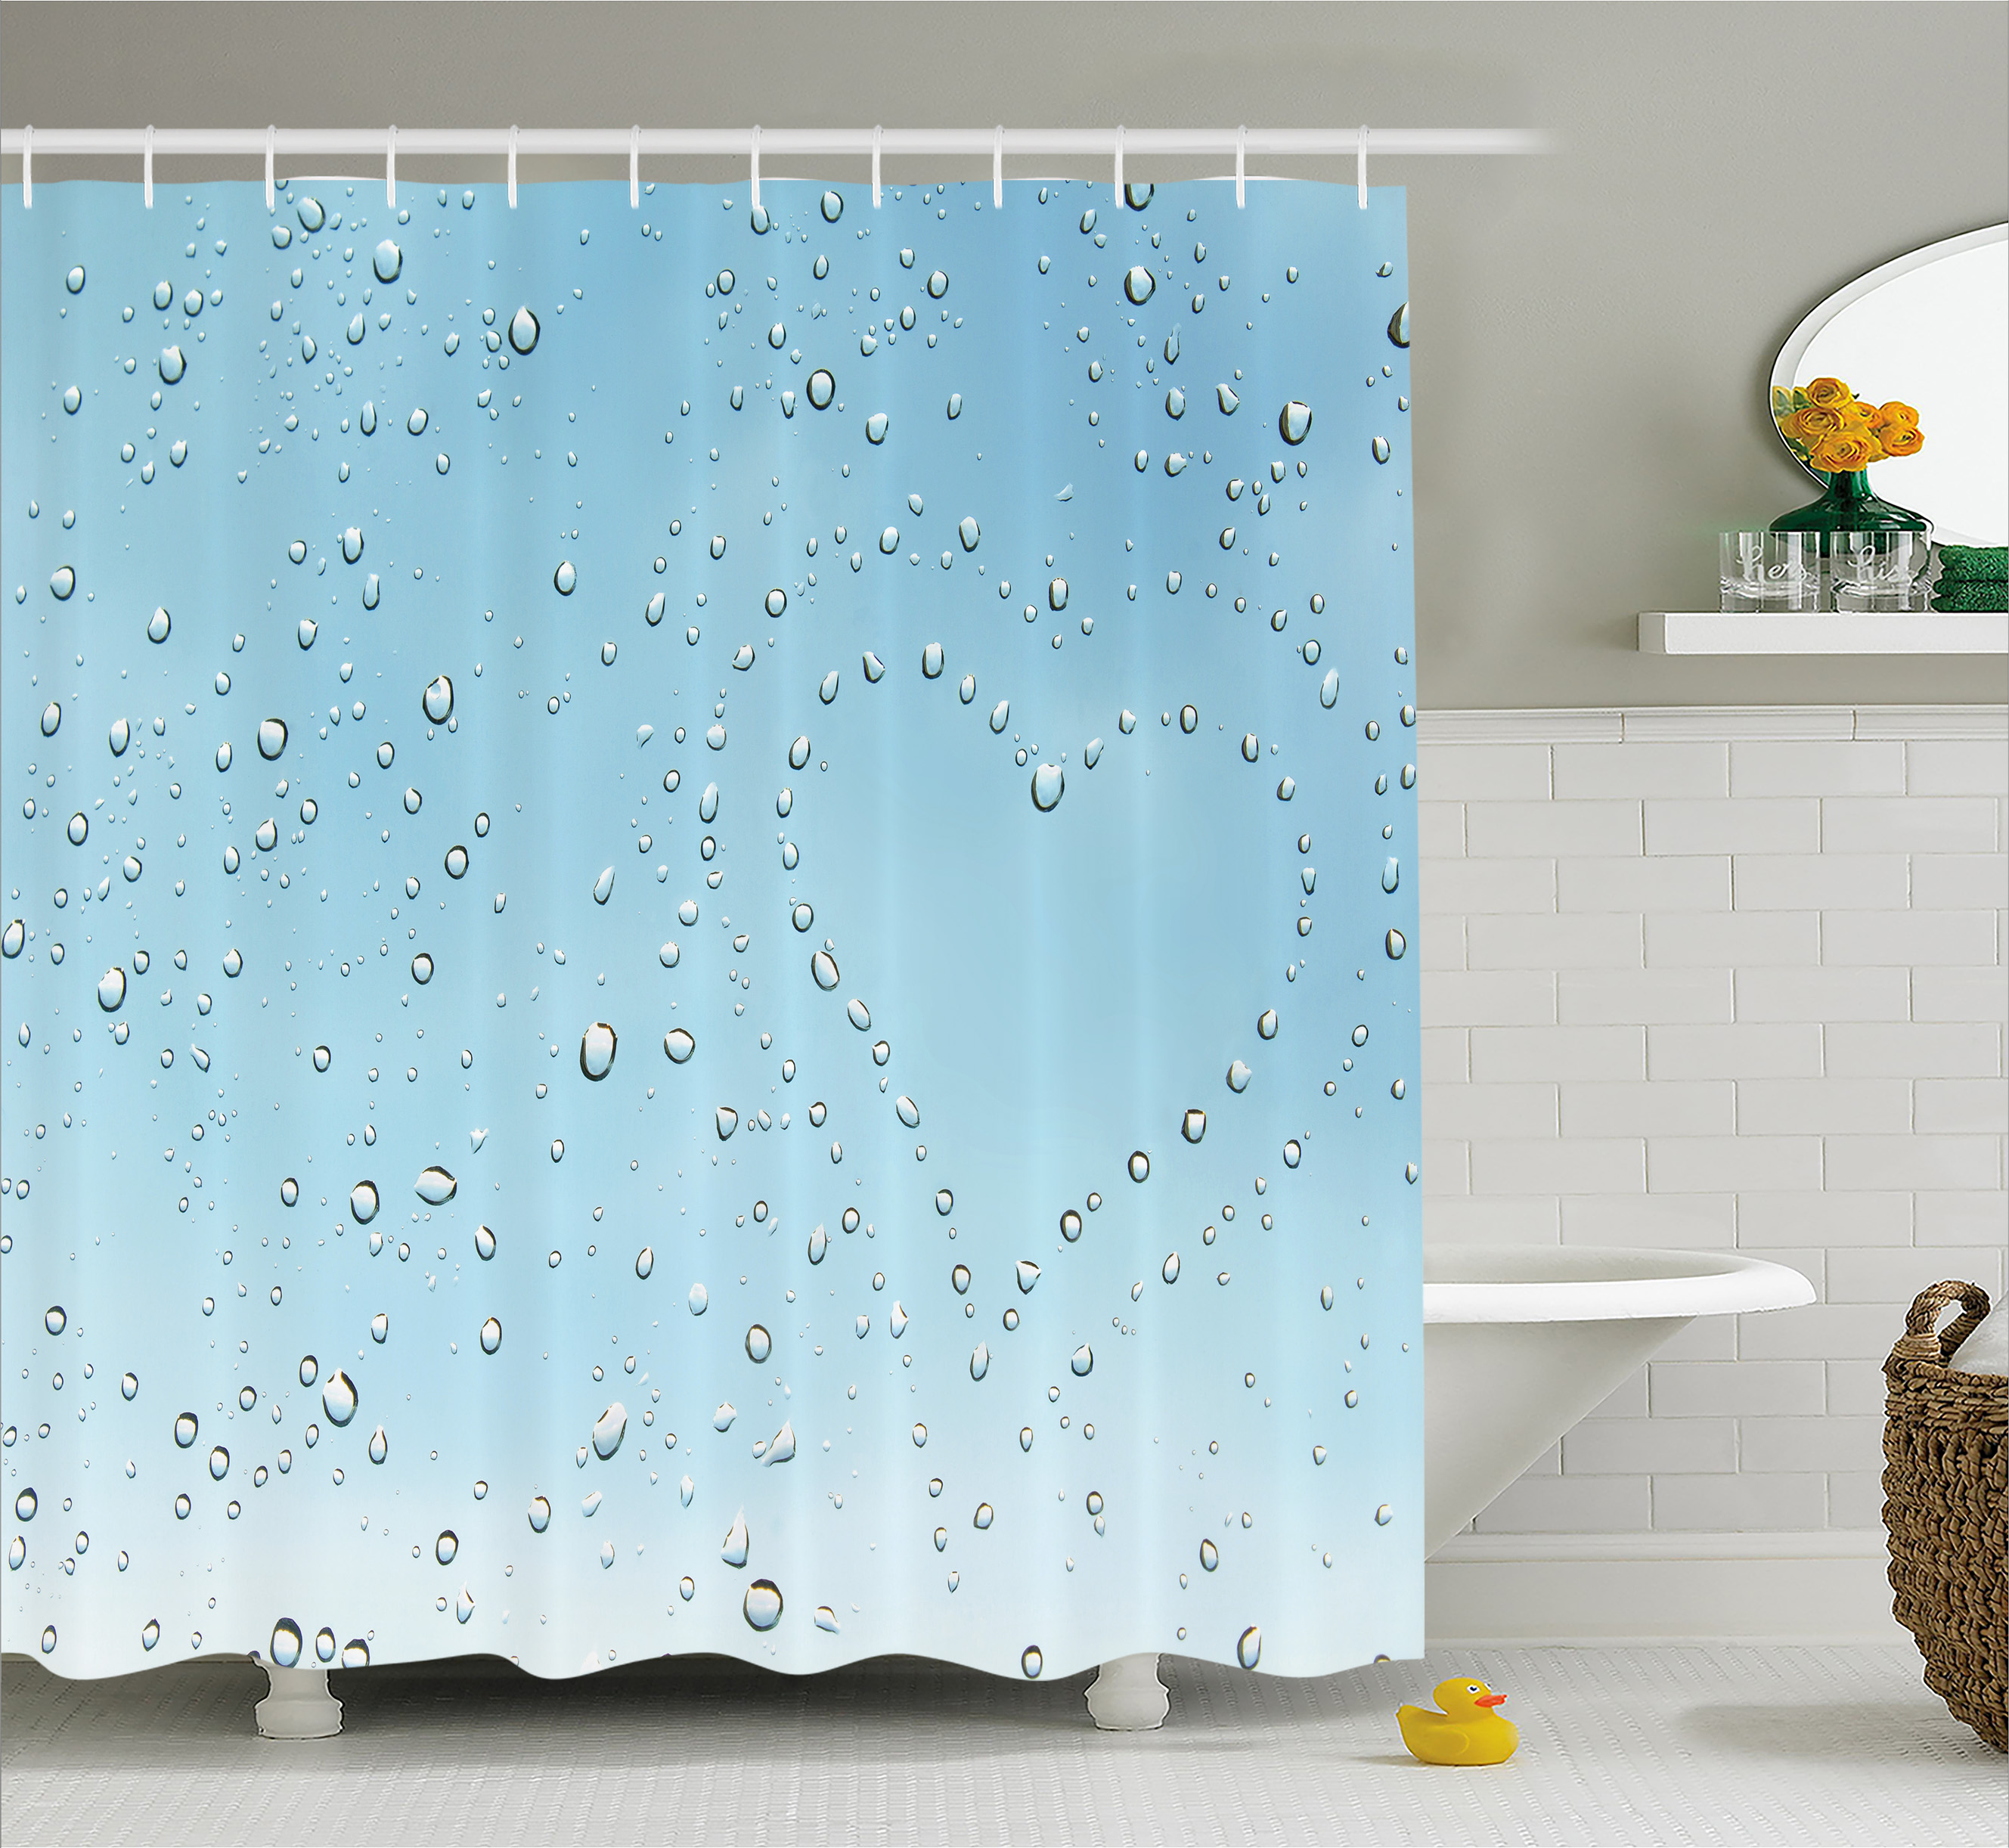 Farmhouse Decor Shower Curtain, Heart Shape Rain Droplets on Crystal Clear Window Glass Pure Love Valentines, Fabric Bathroom Set with Hooks, 69W X 75L Inches Long, Blue, by Ambesonne